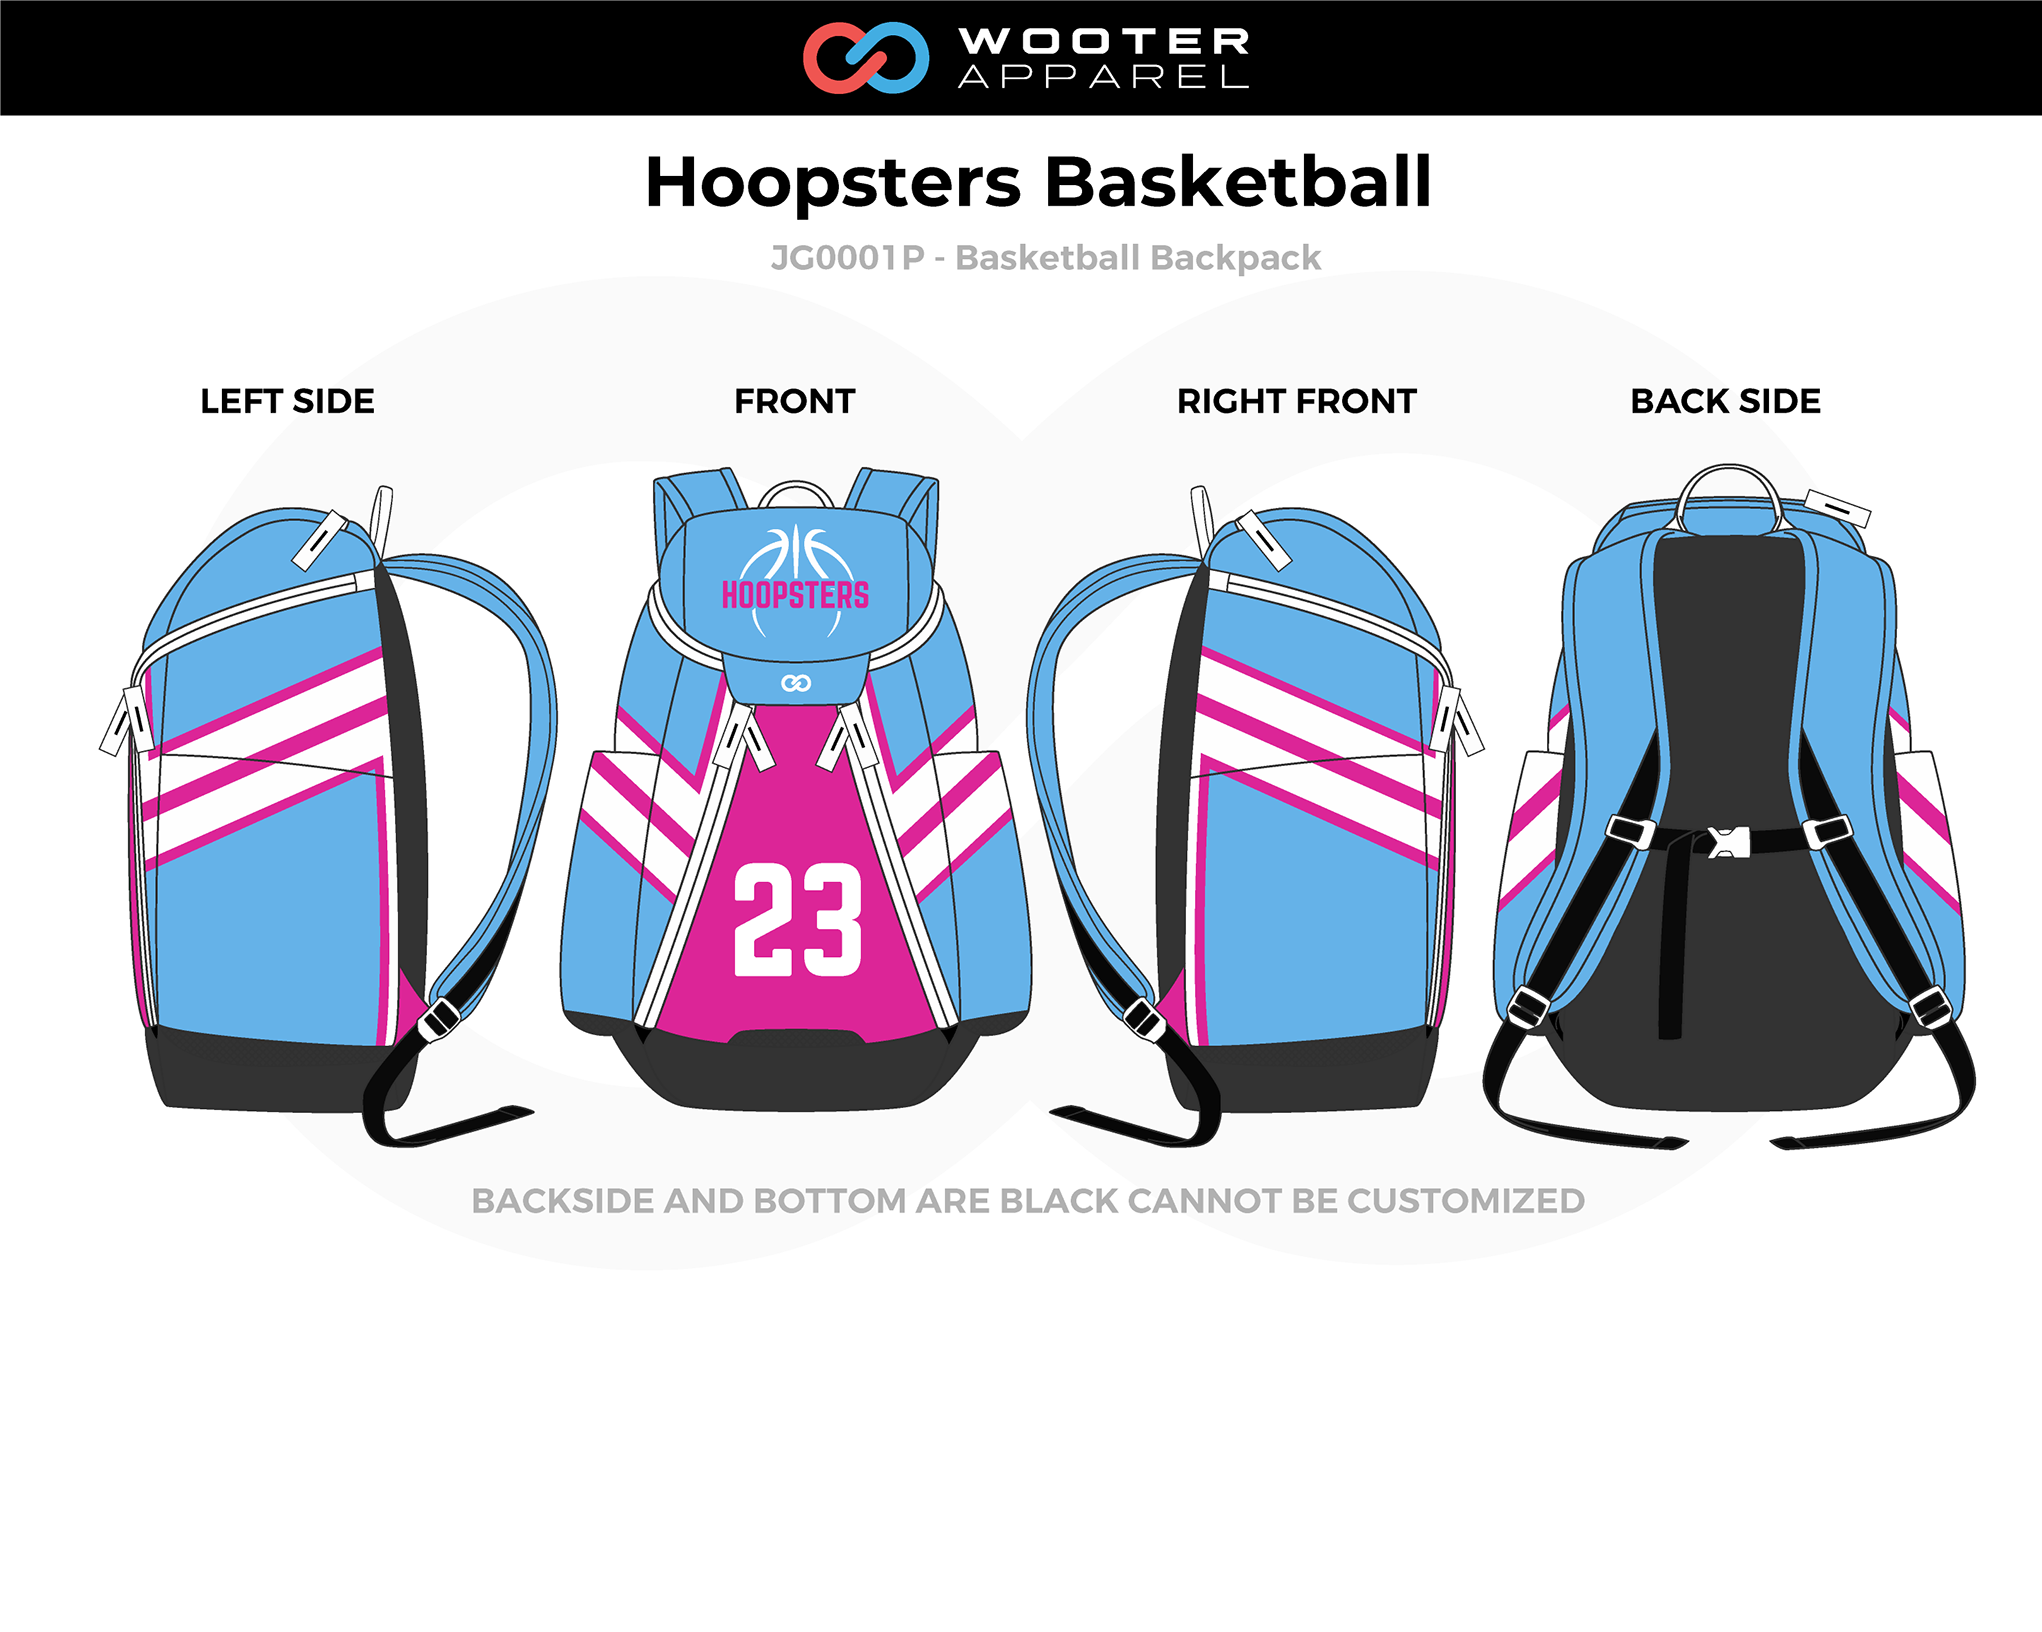 HOOPSTERS Blue Pink White Black Basketball Backpack